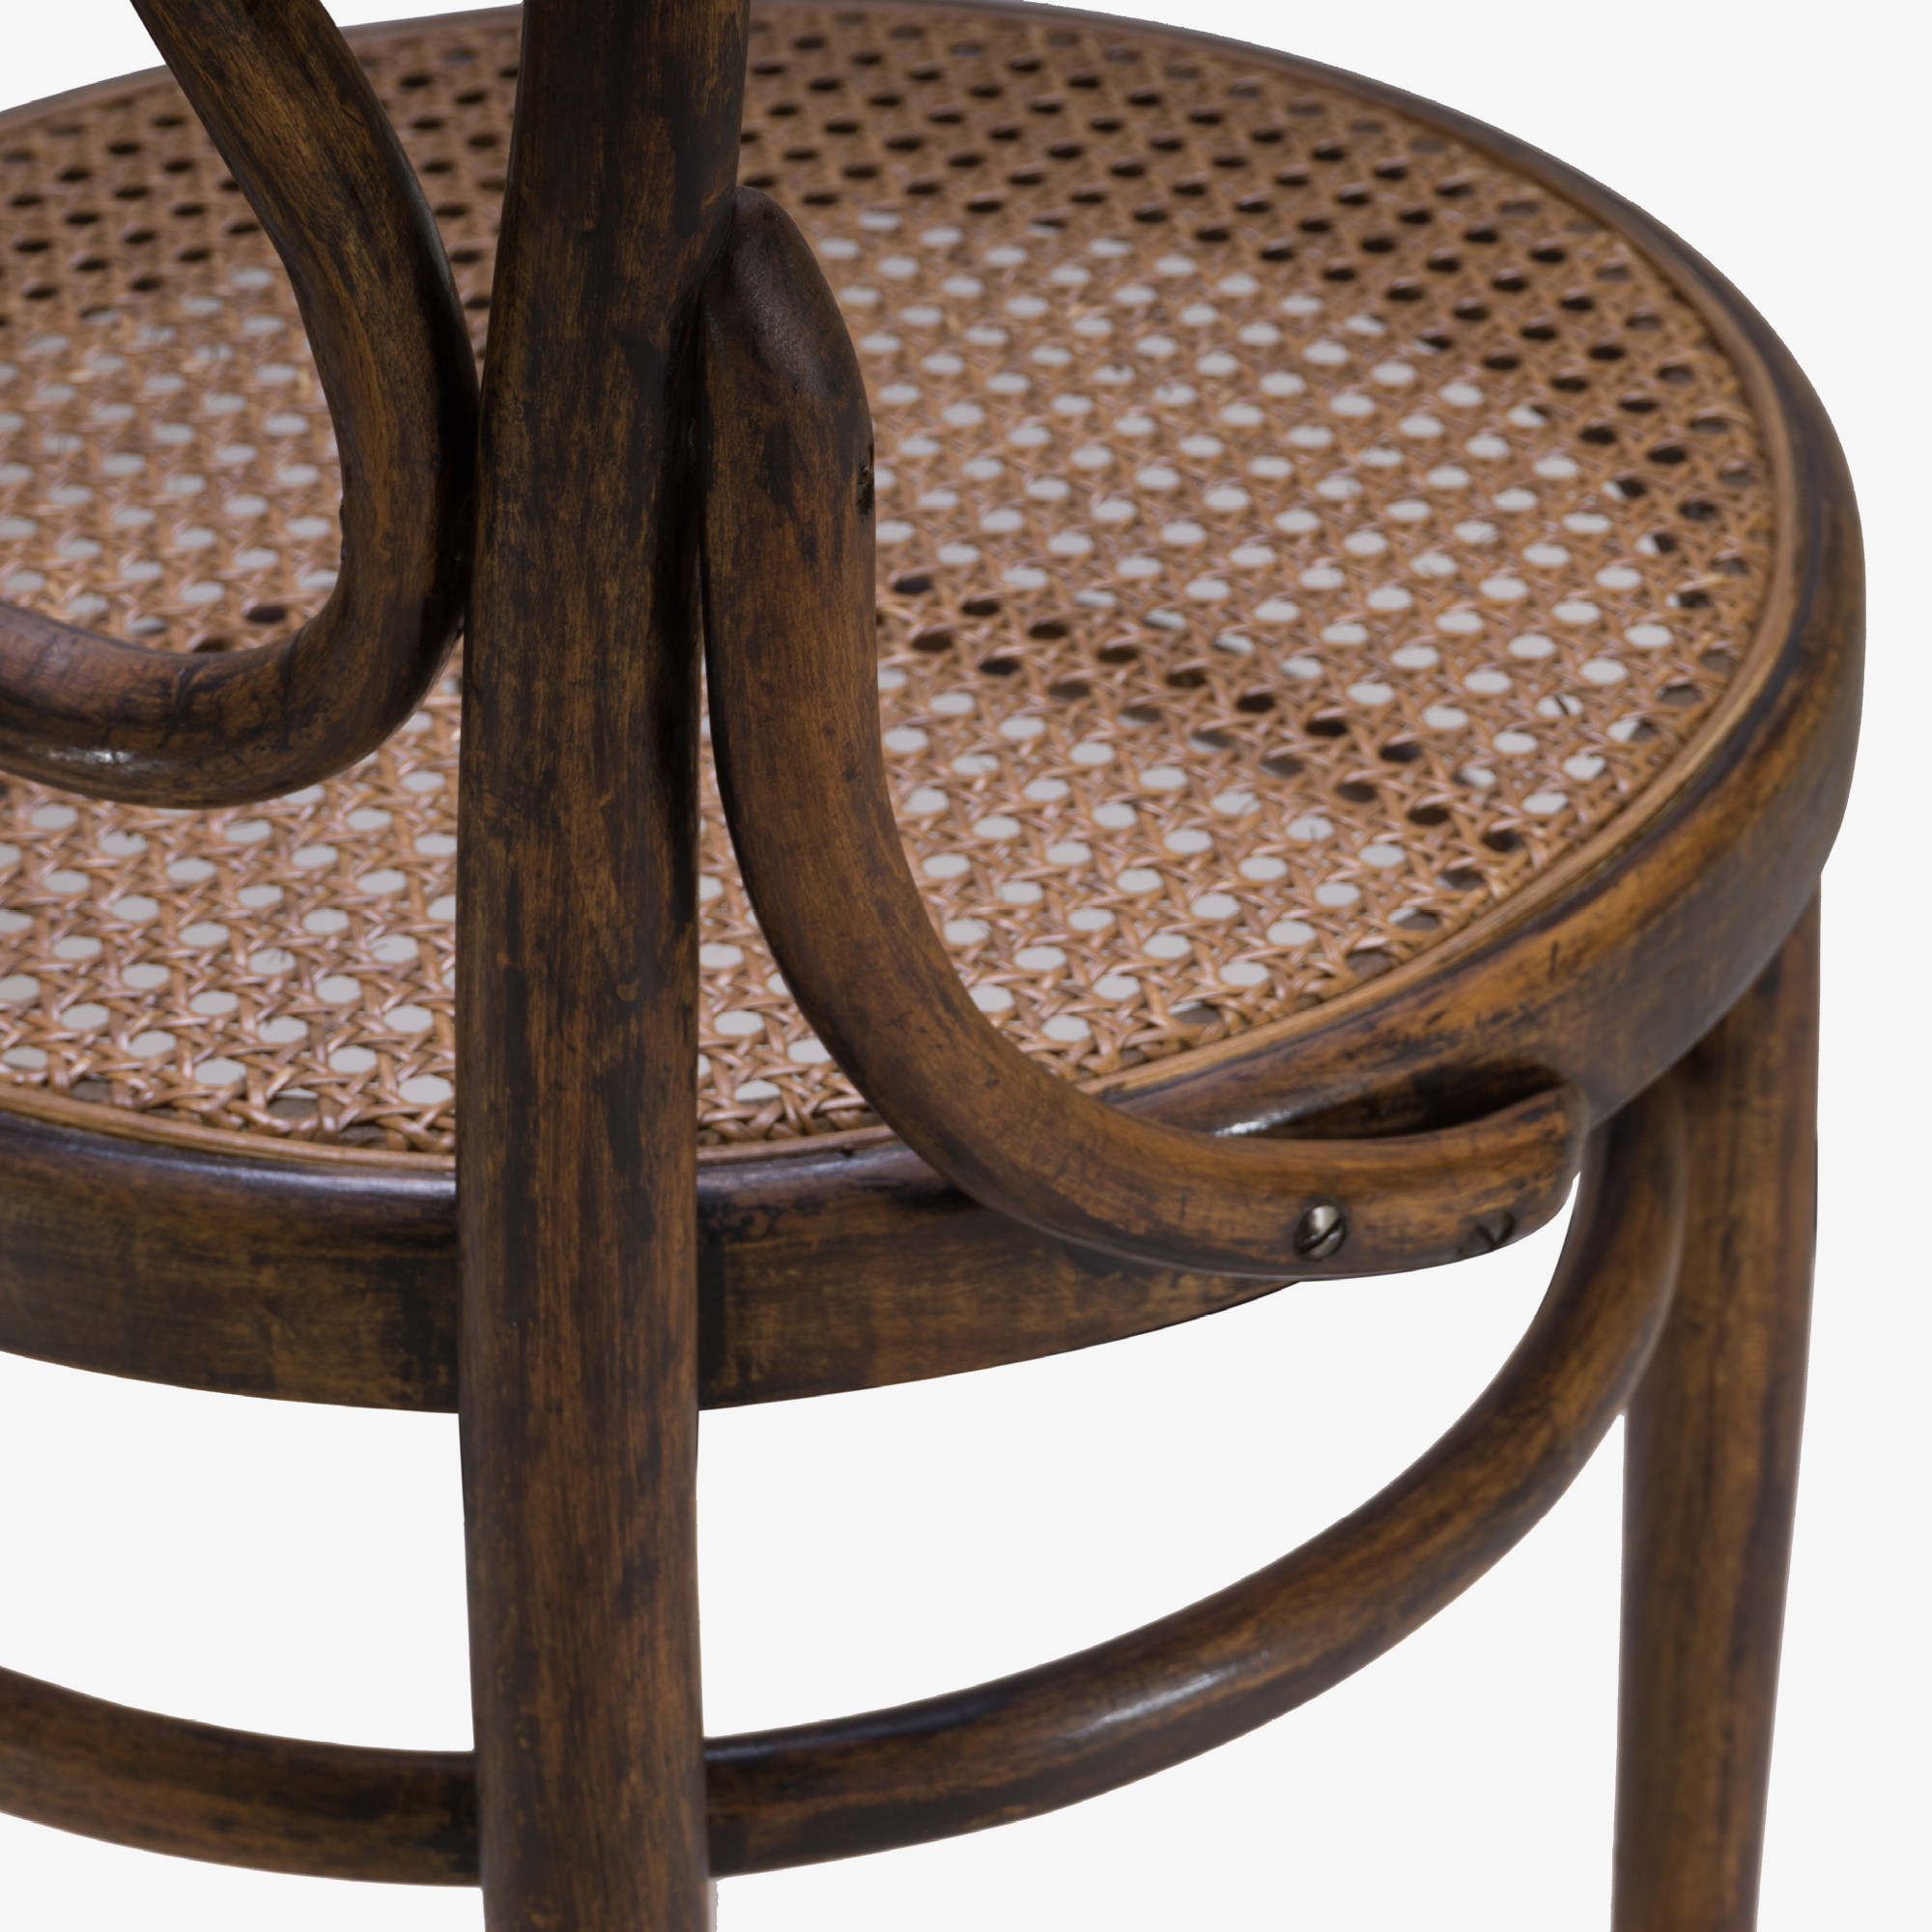 Italian Wood Bistro Chairs with Caned Seats6.png